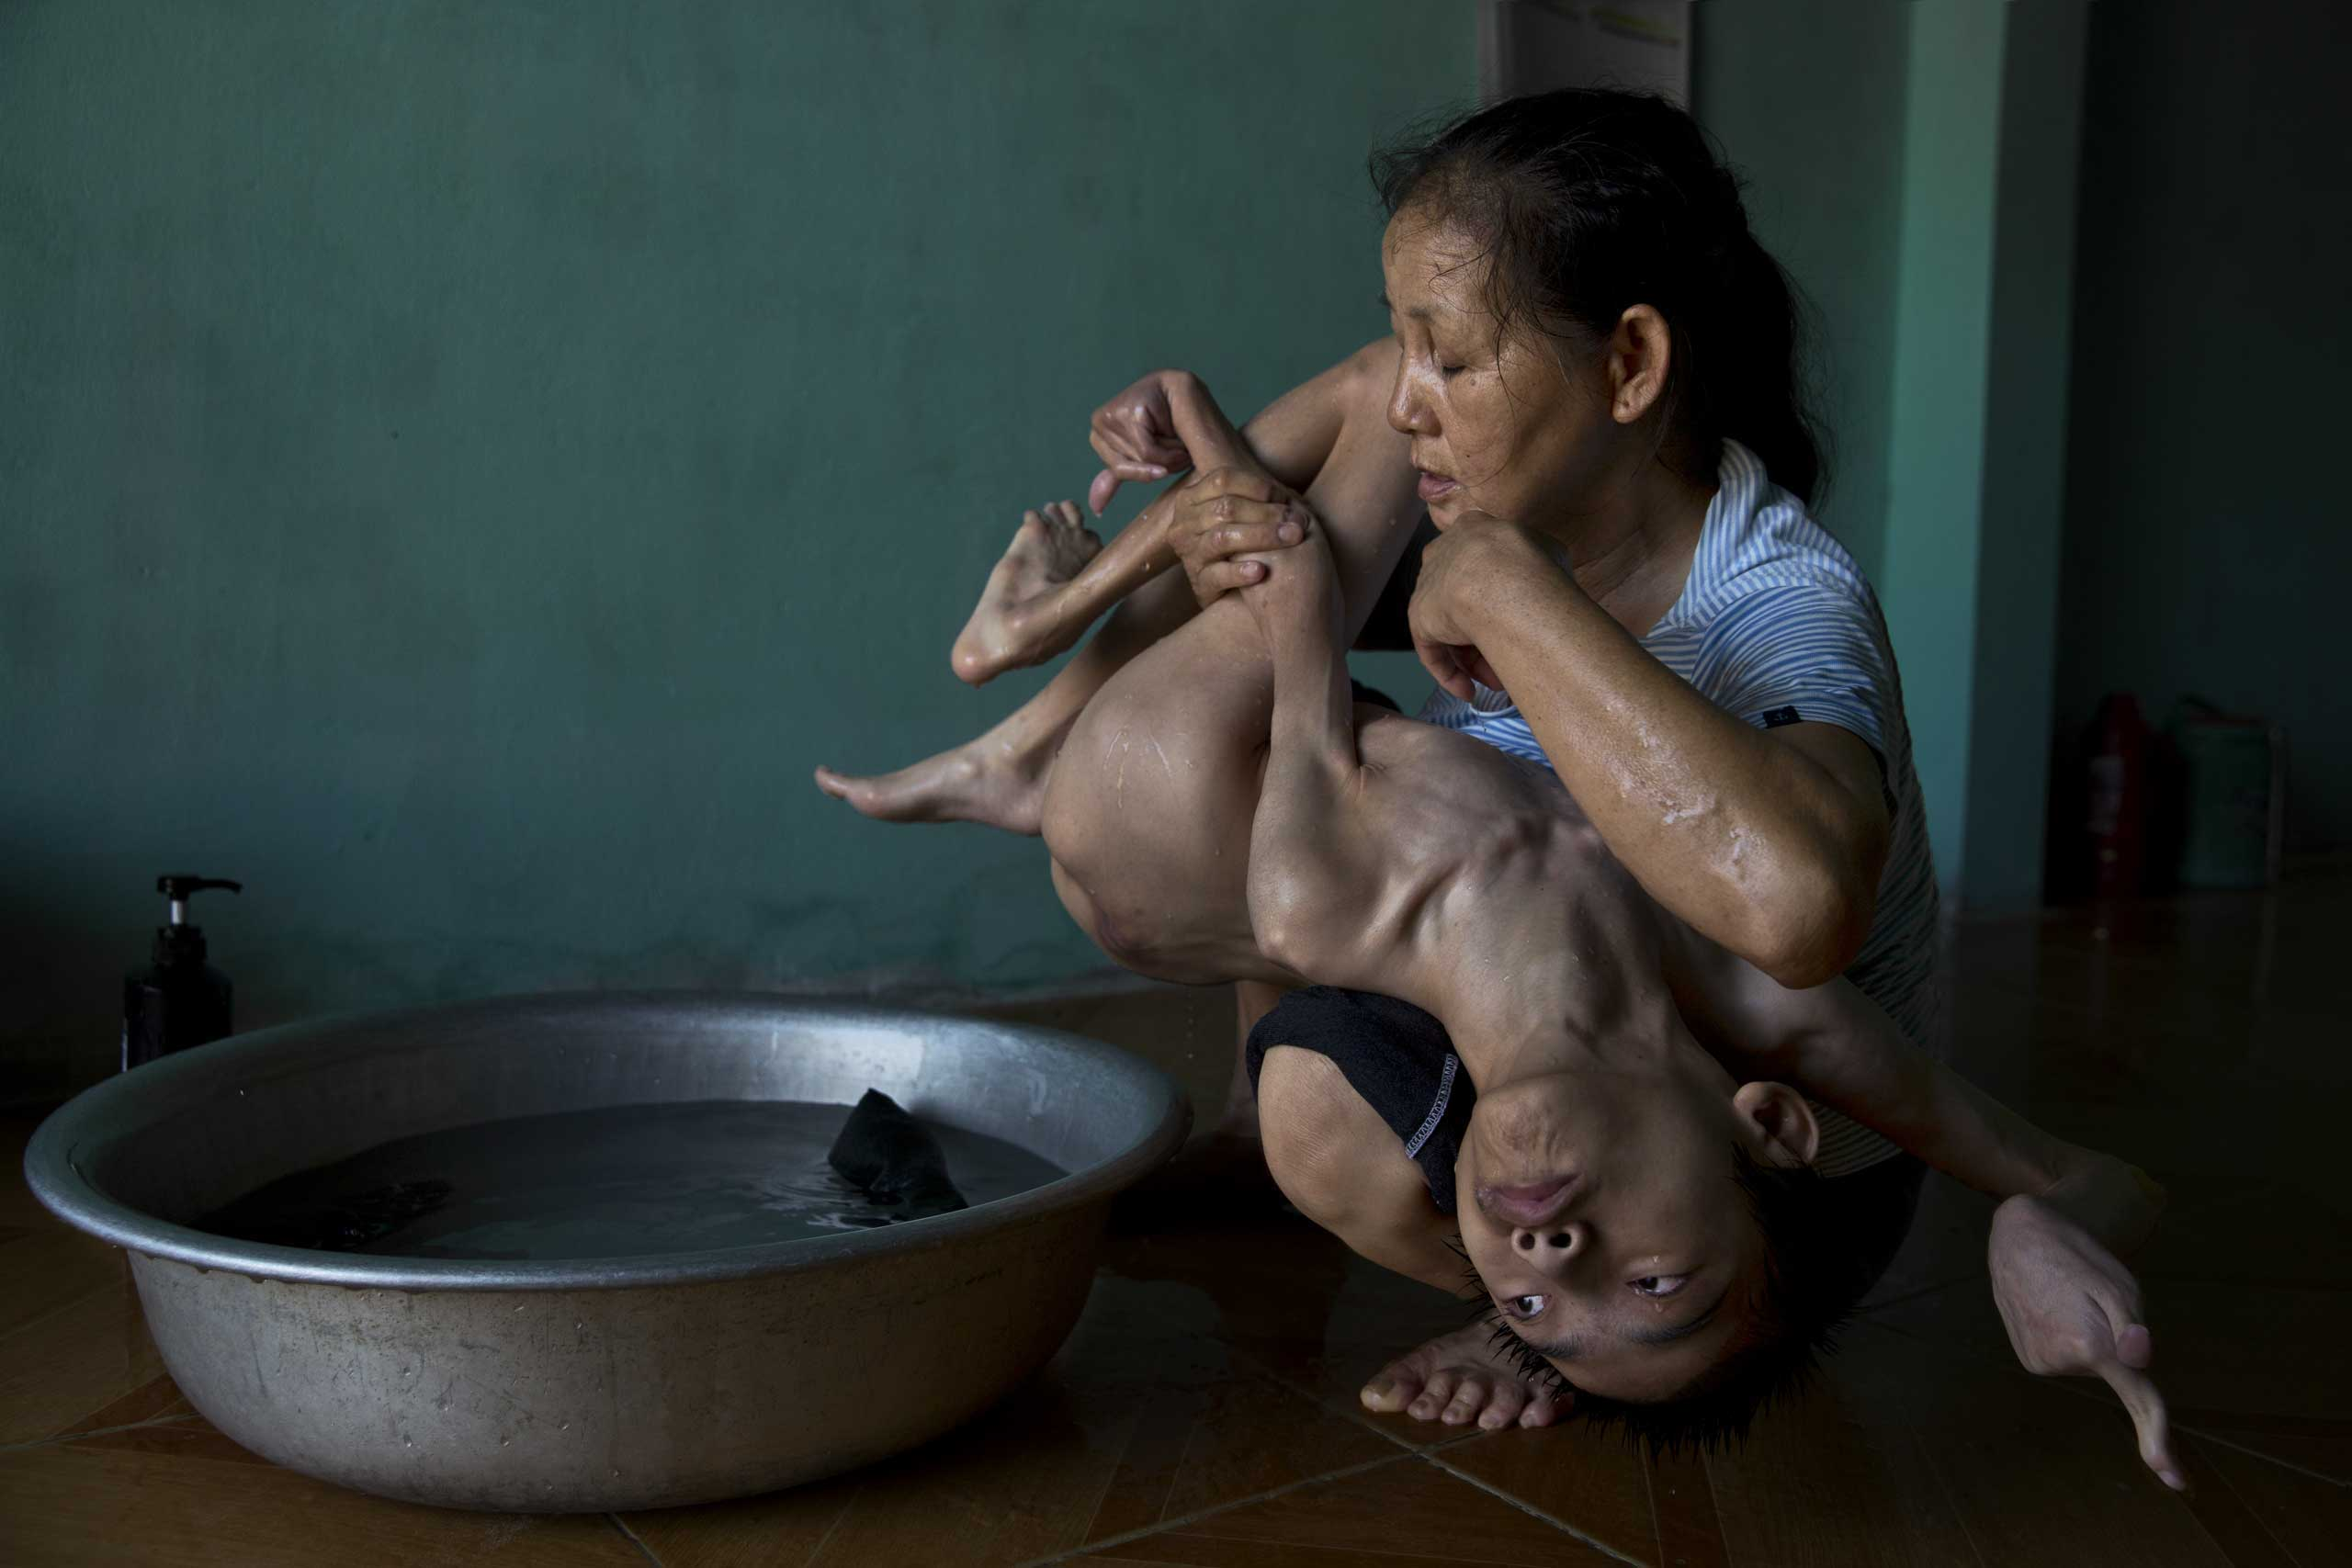 Tran Thien Nhan, with severely malformed head and diminutive body, is an Agent Orange victim in Danang, Vietnam. His mother, Ngo Thi Tinh, and grandmother, The Thi Dao, care for him.